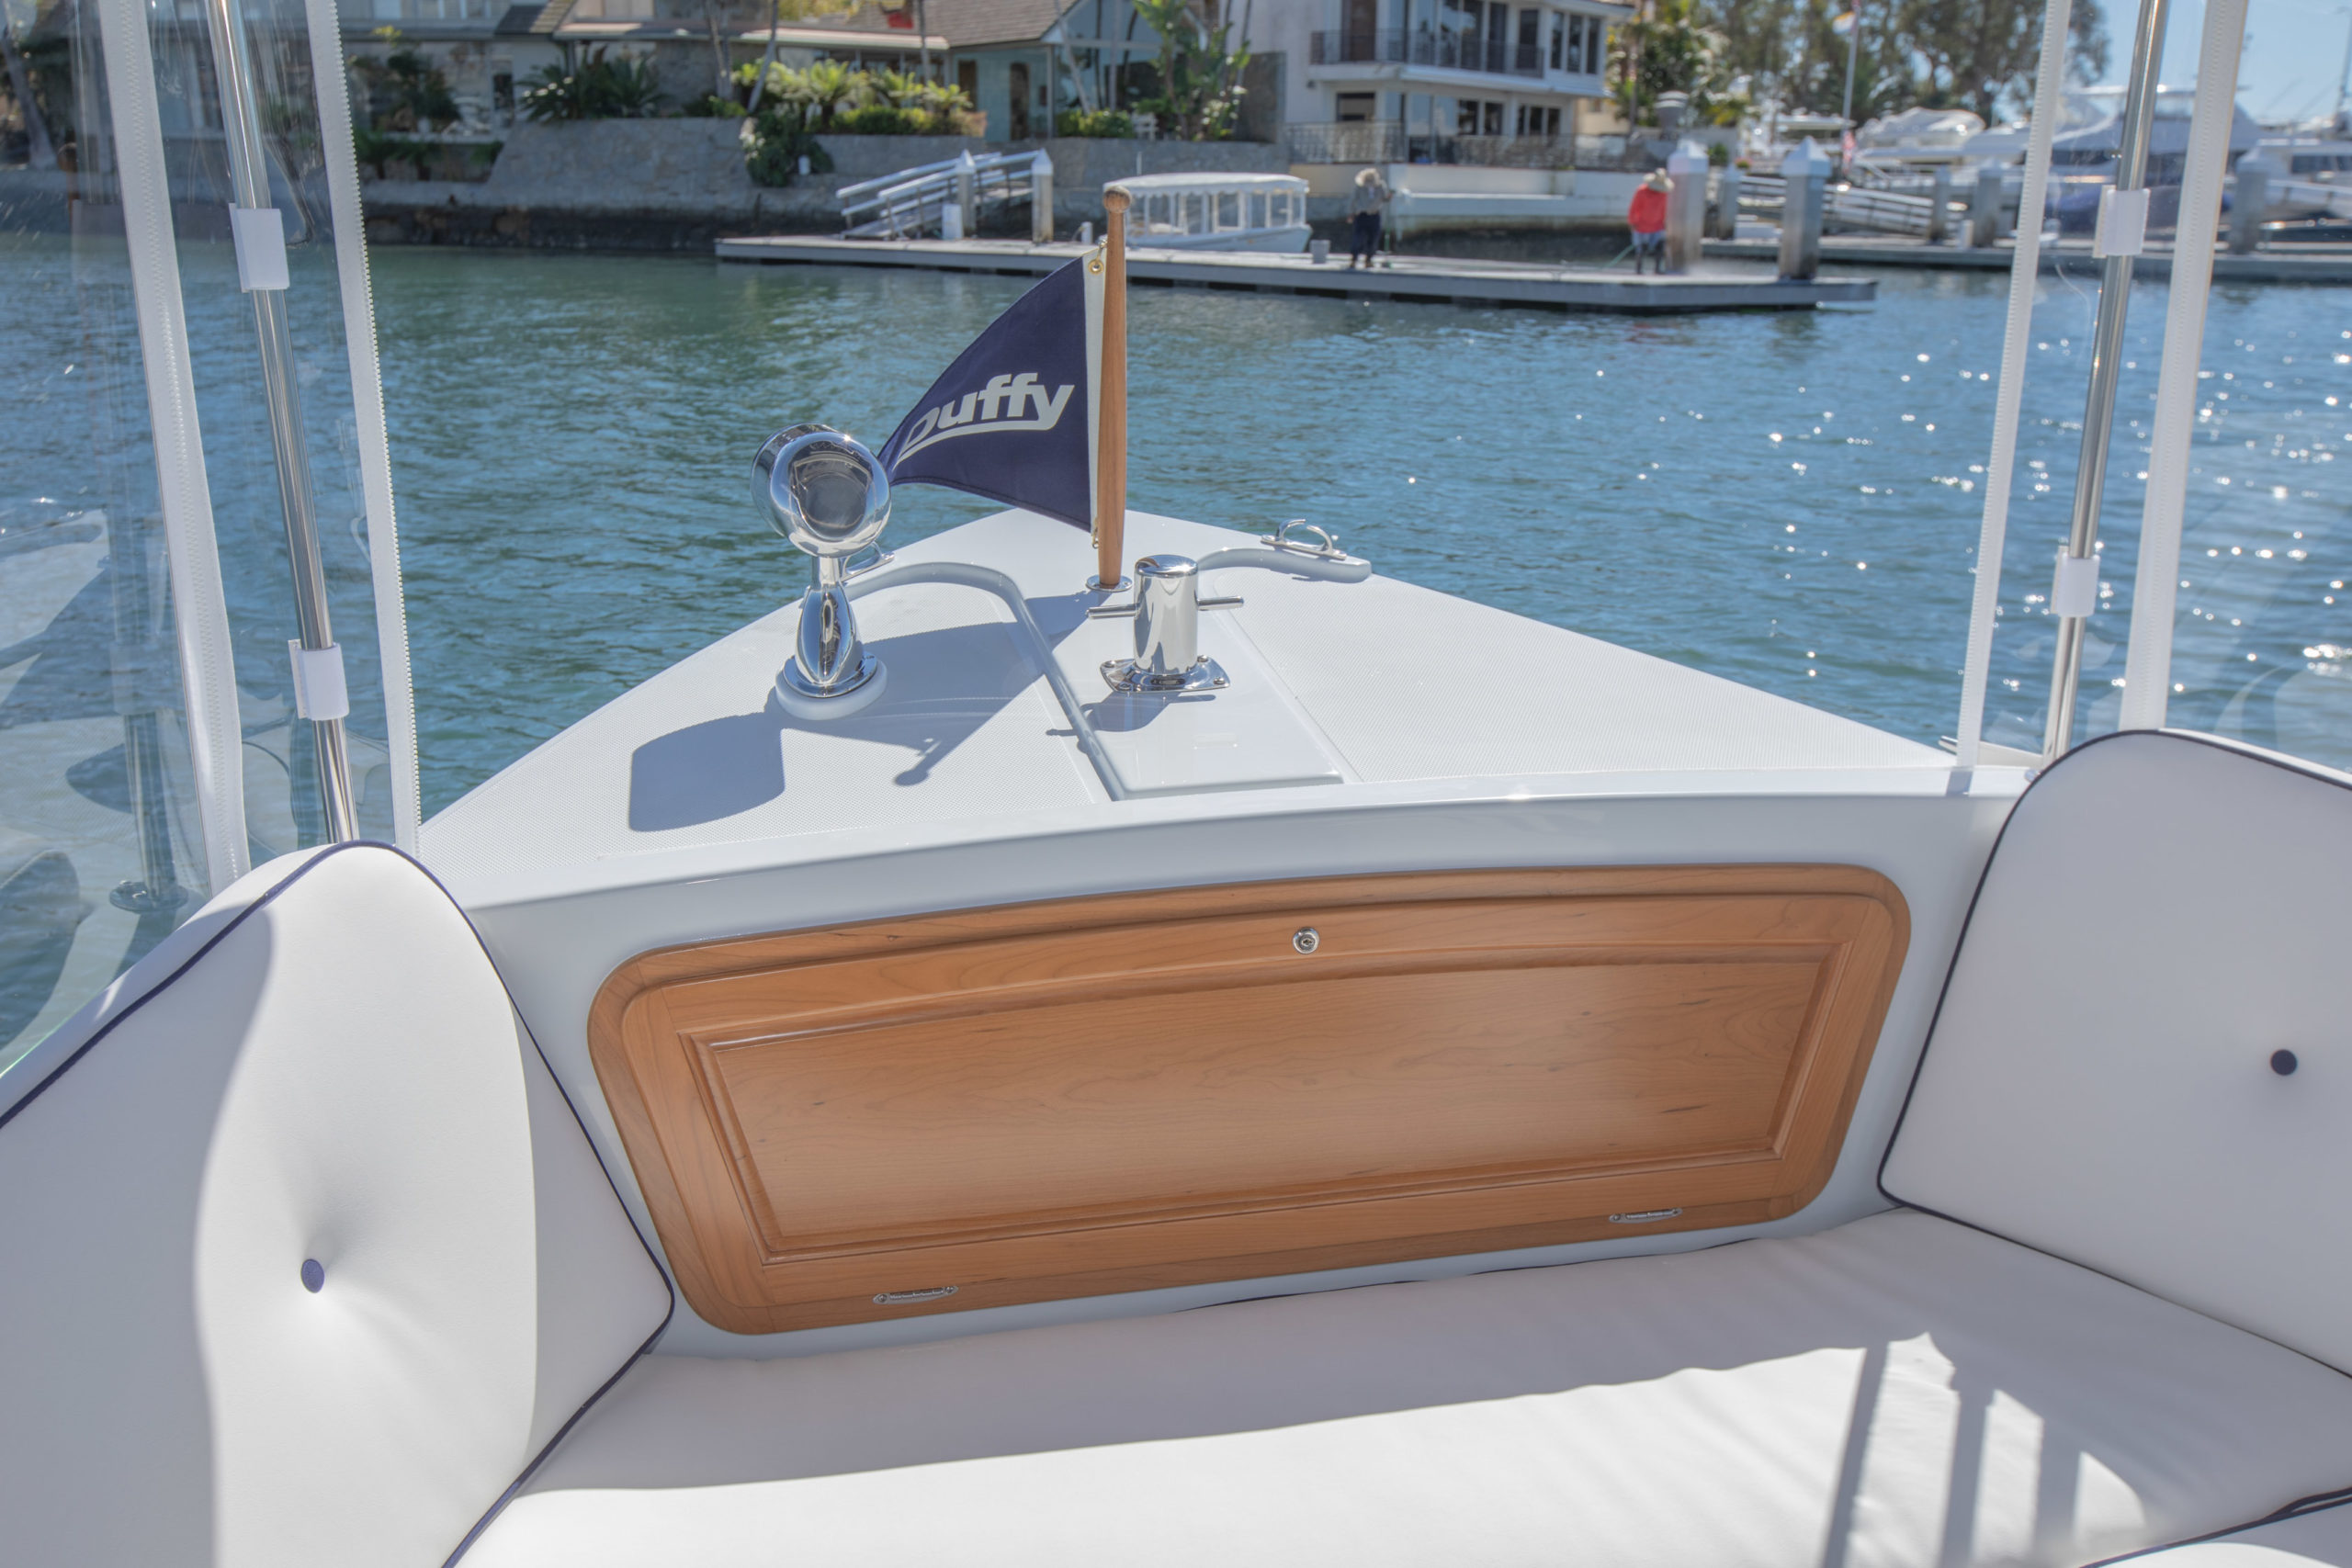 Duffy-Electric-Boats-22-Sun-Cruiser-Interior-2020-17